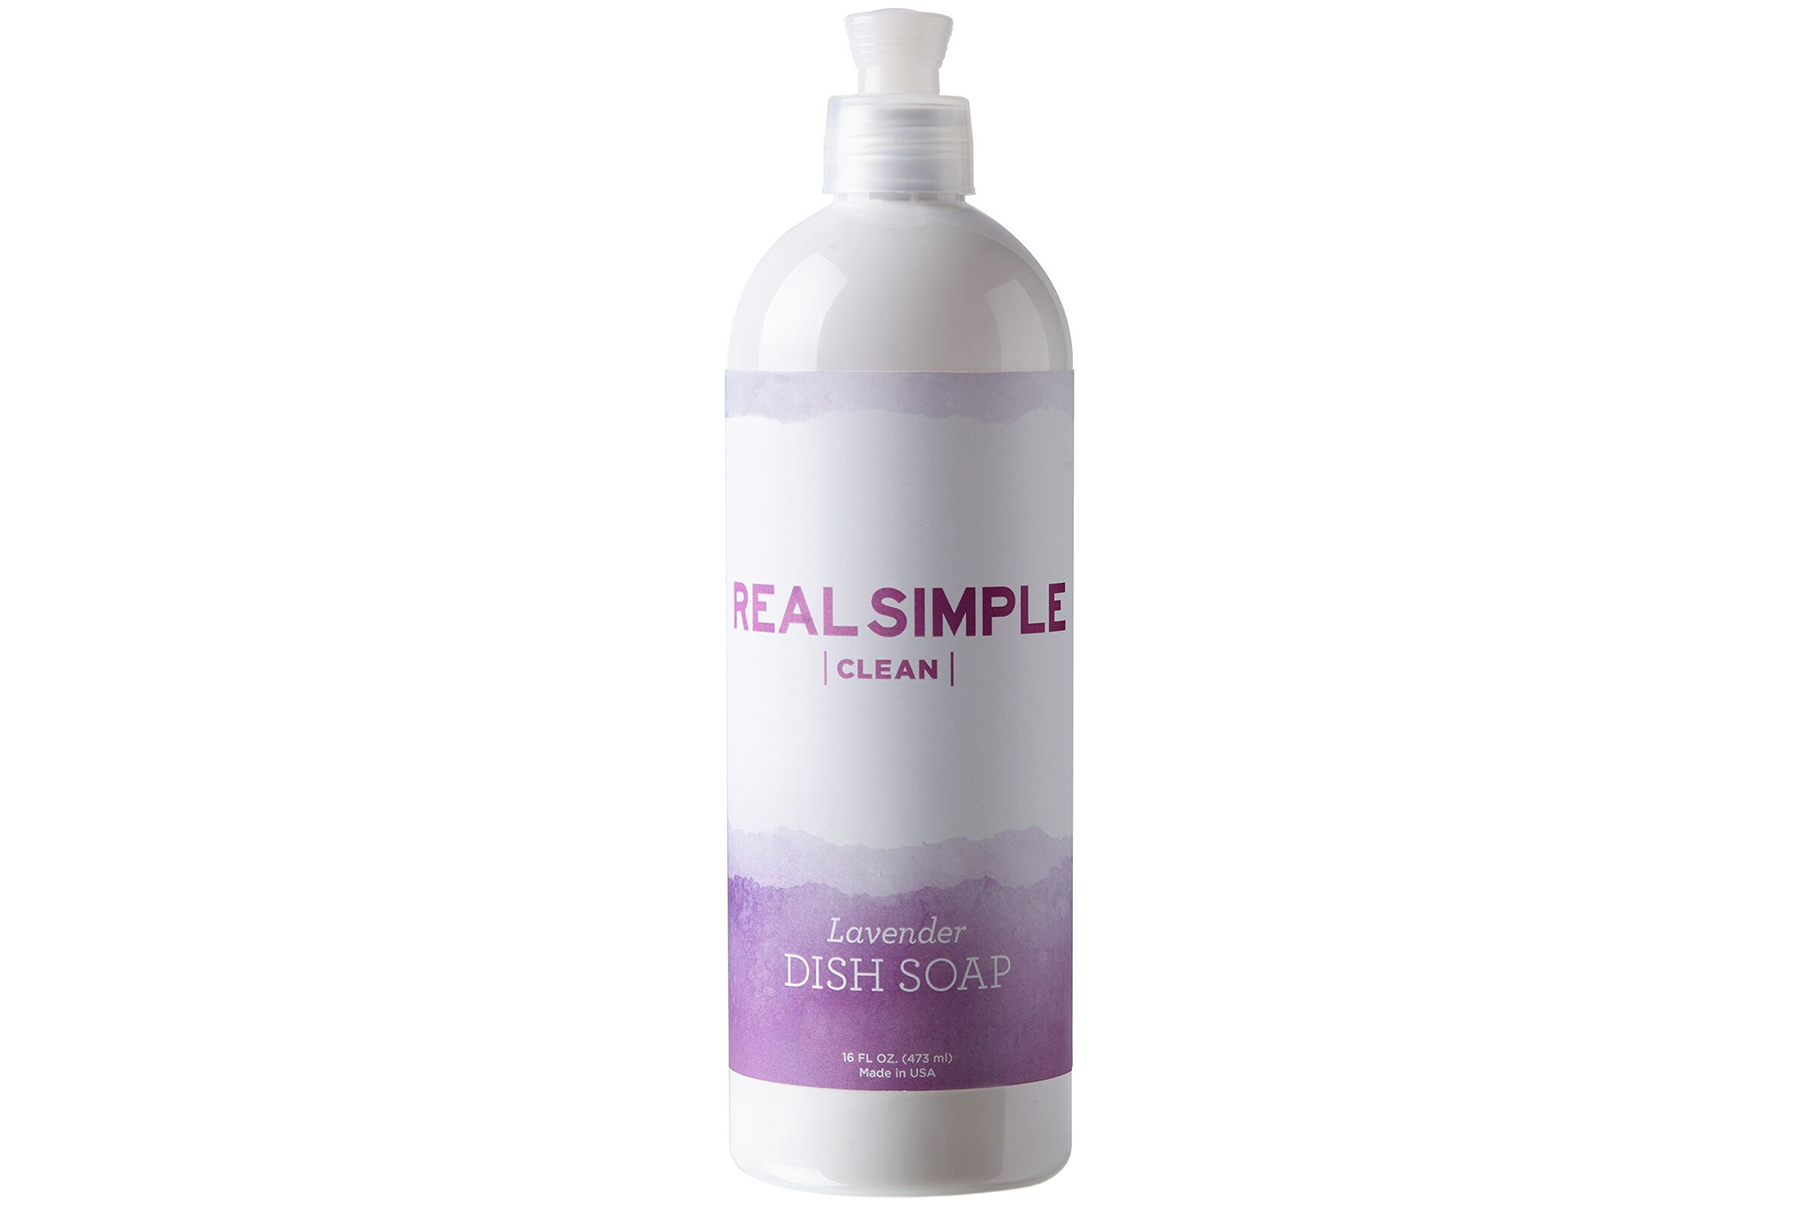 Real Simple Clean Lavender Dish Soap